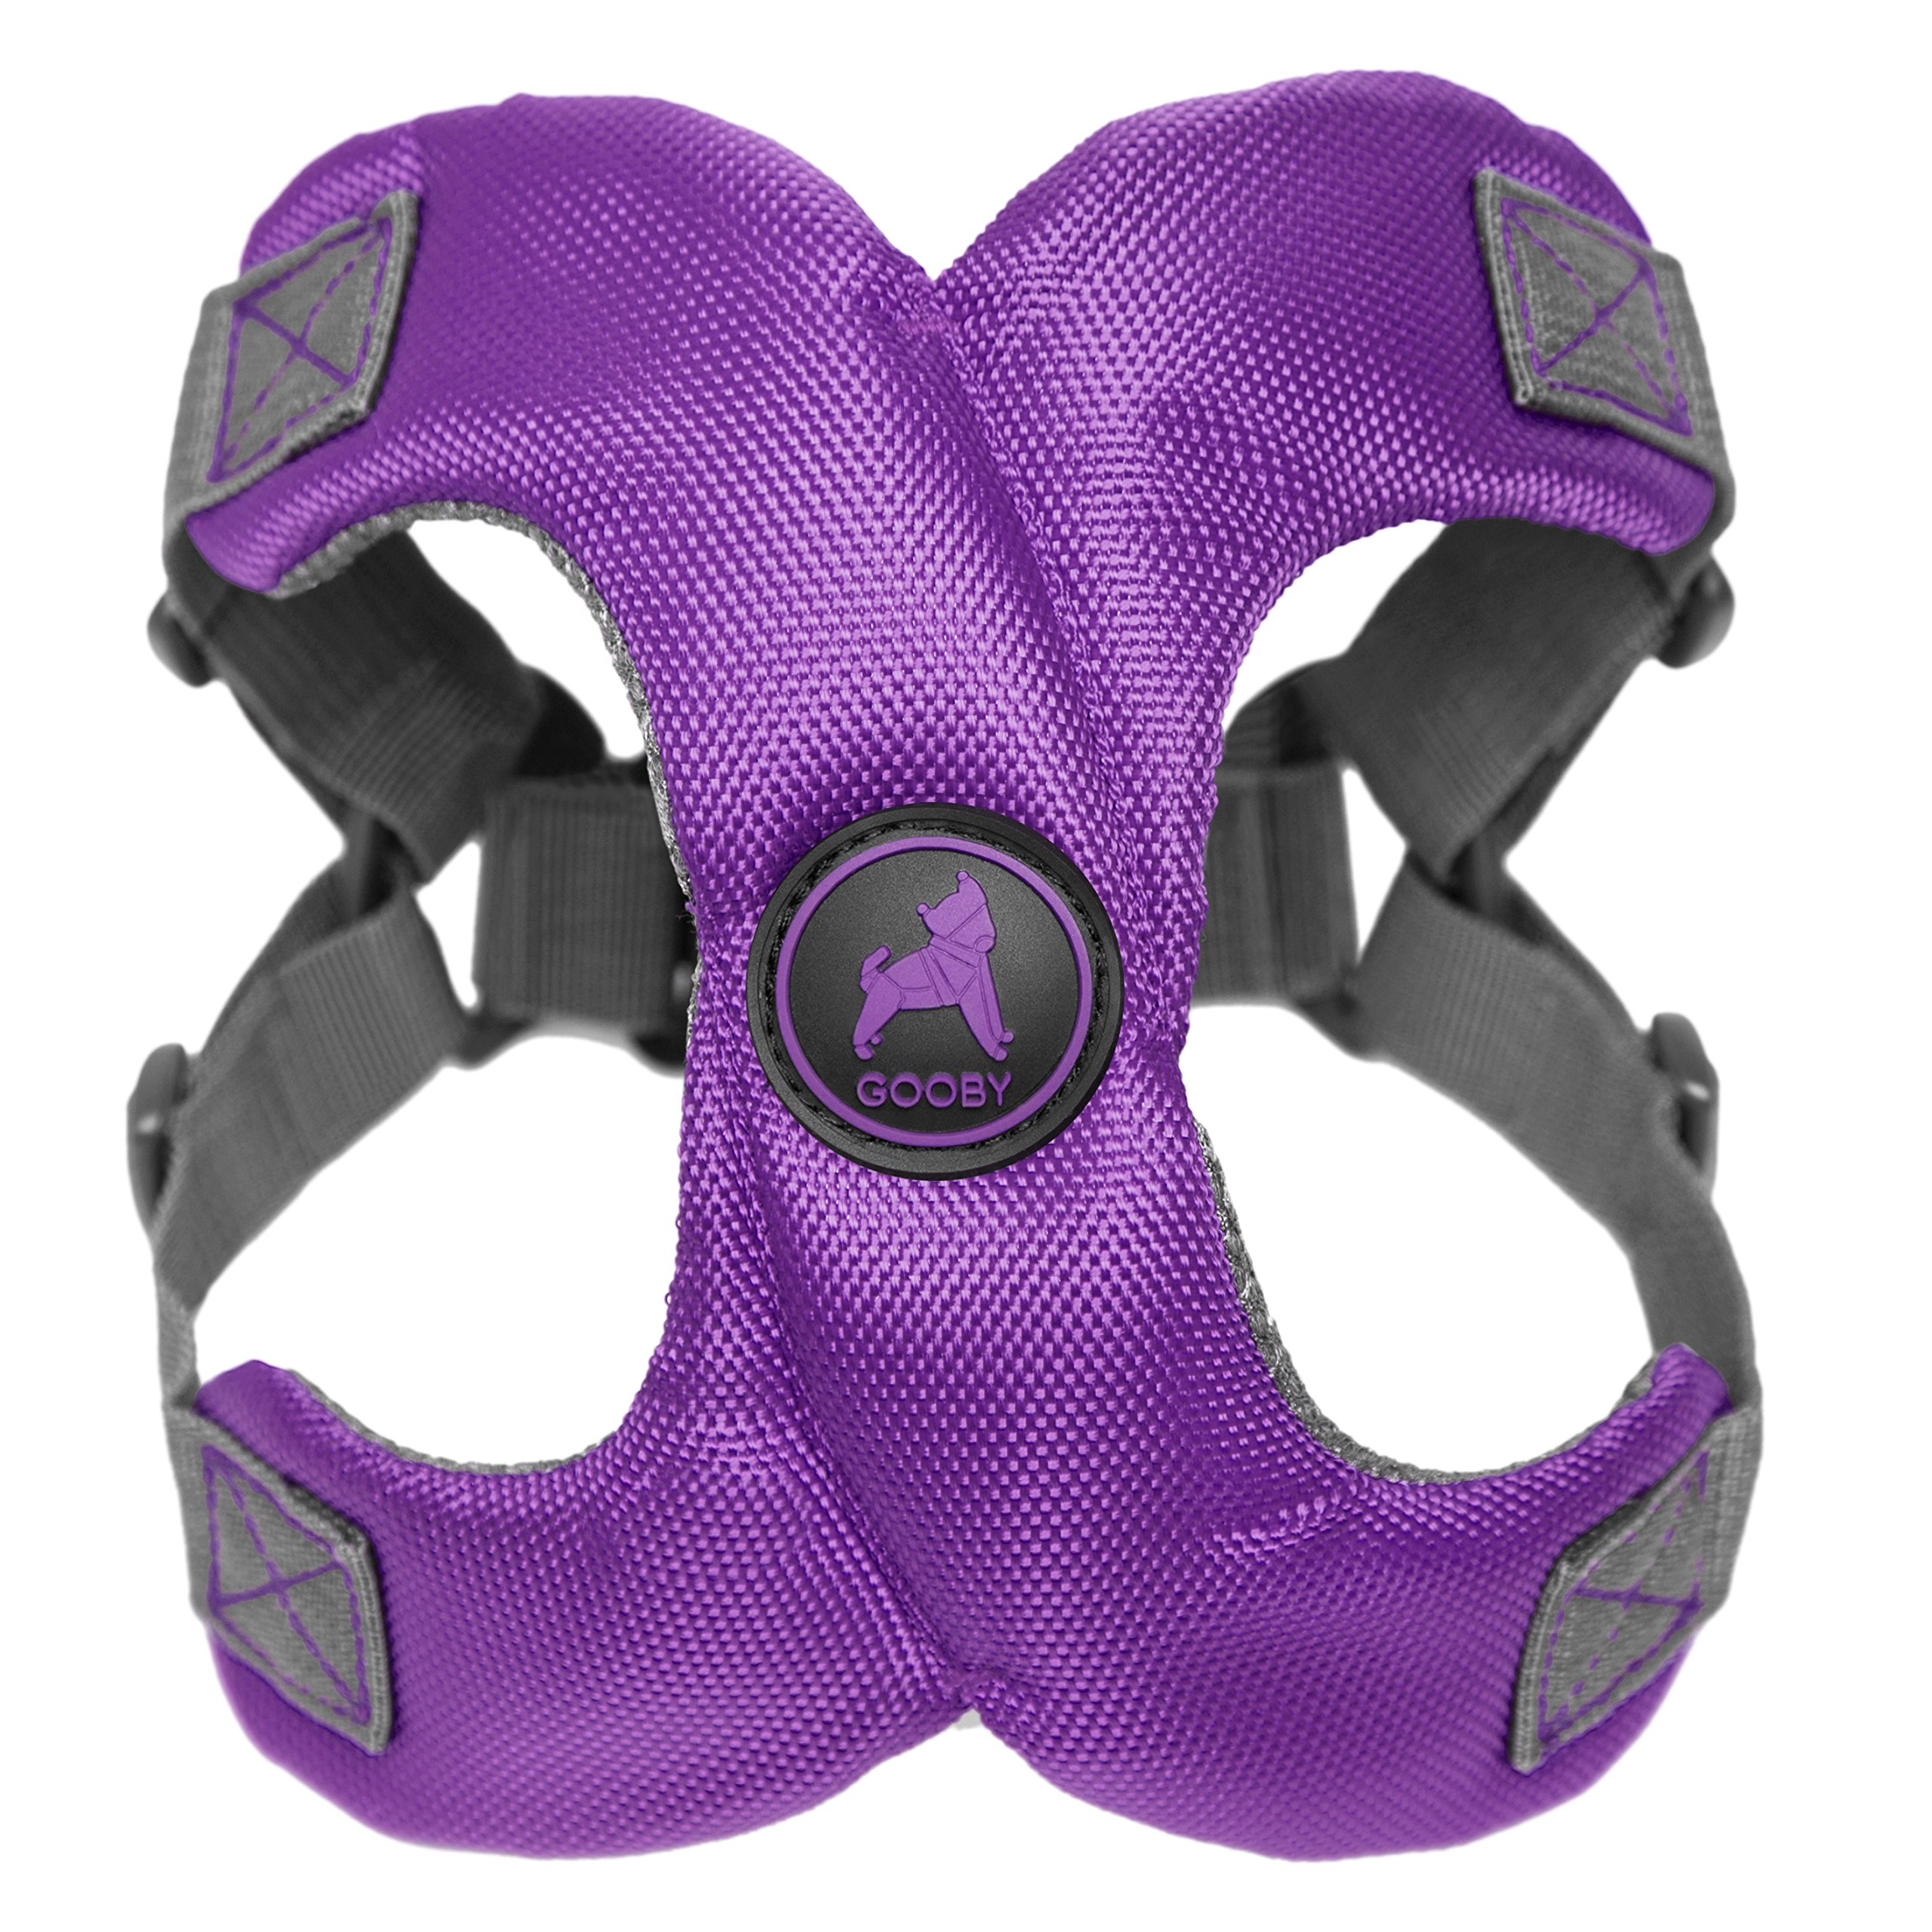 [Old Version] Gooby Escape Free Memory Foam Harness for Small Dogs, Purple, Medium by Gooby